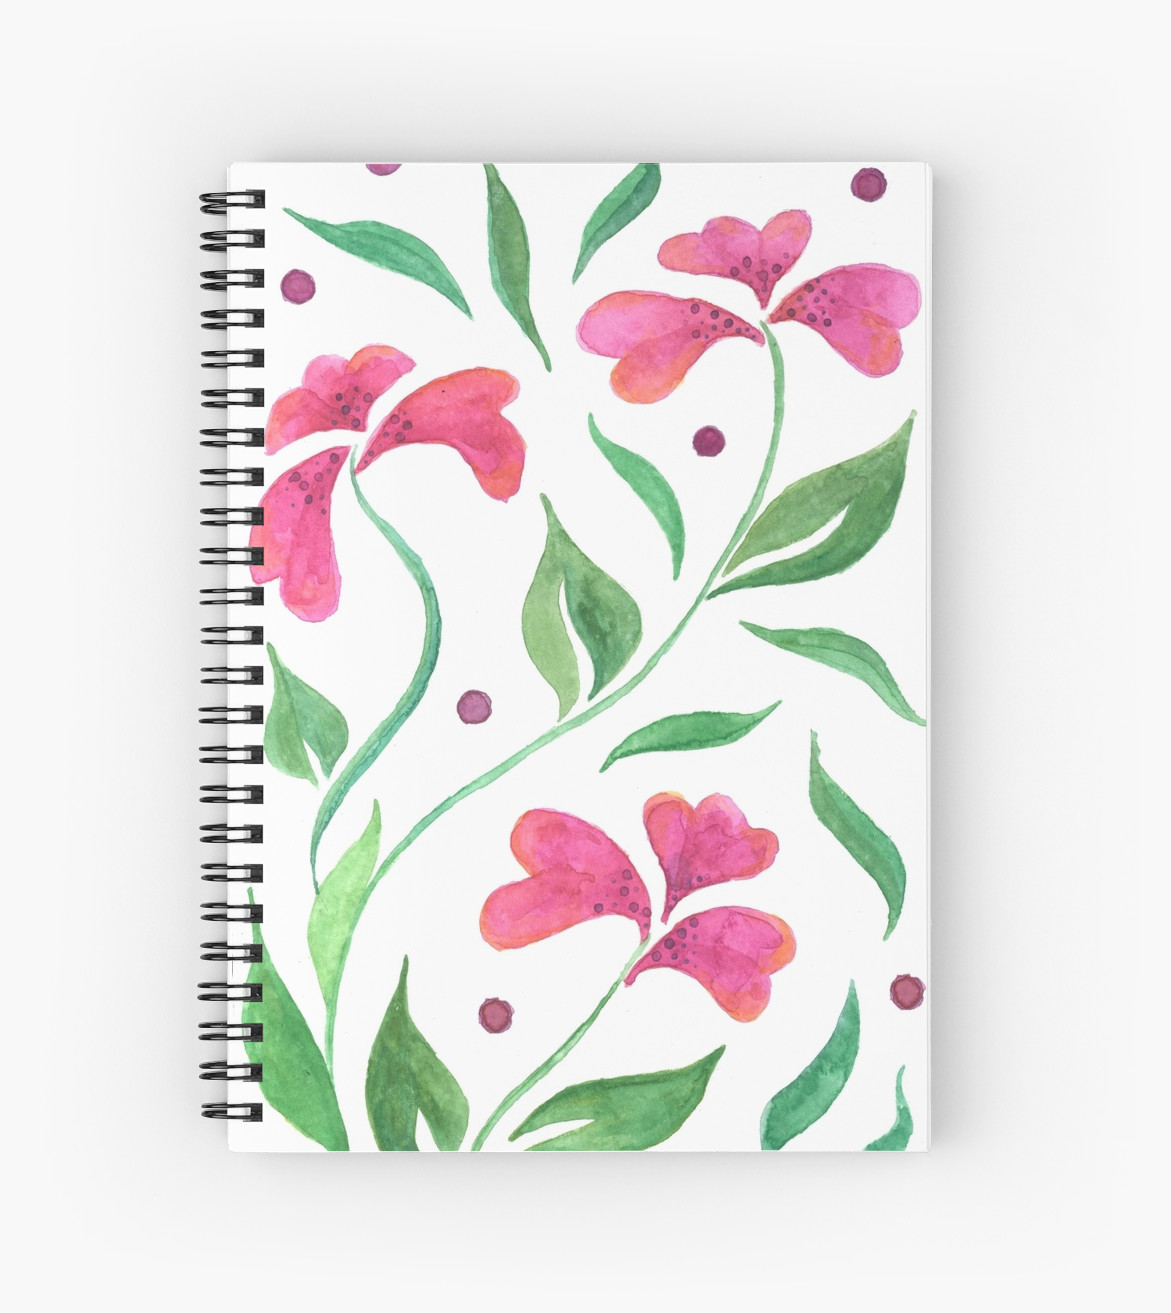 Sprial notebooks and other stationary available at redbubble